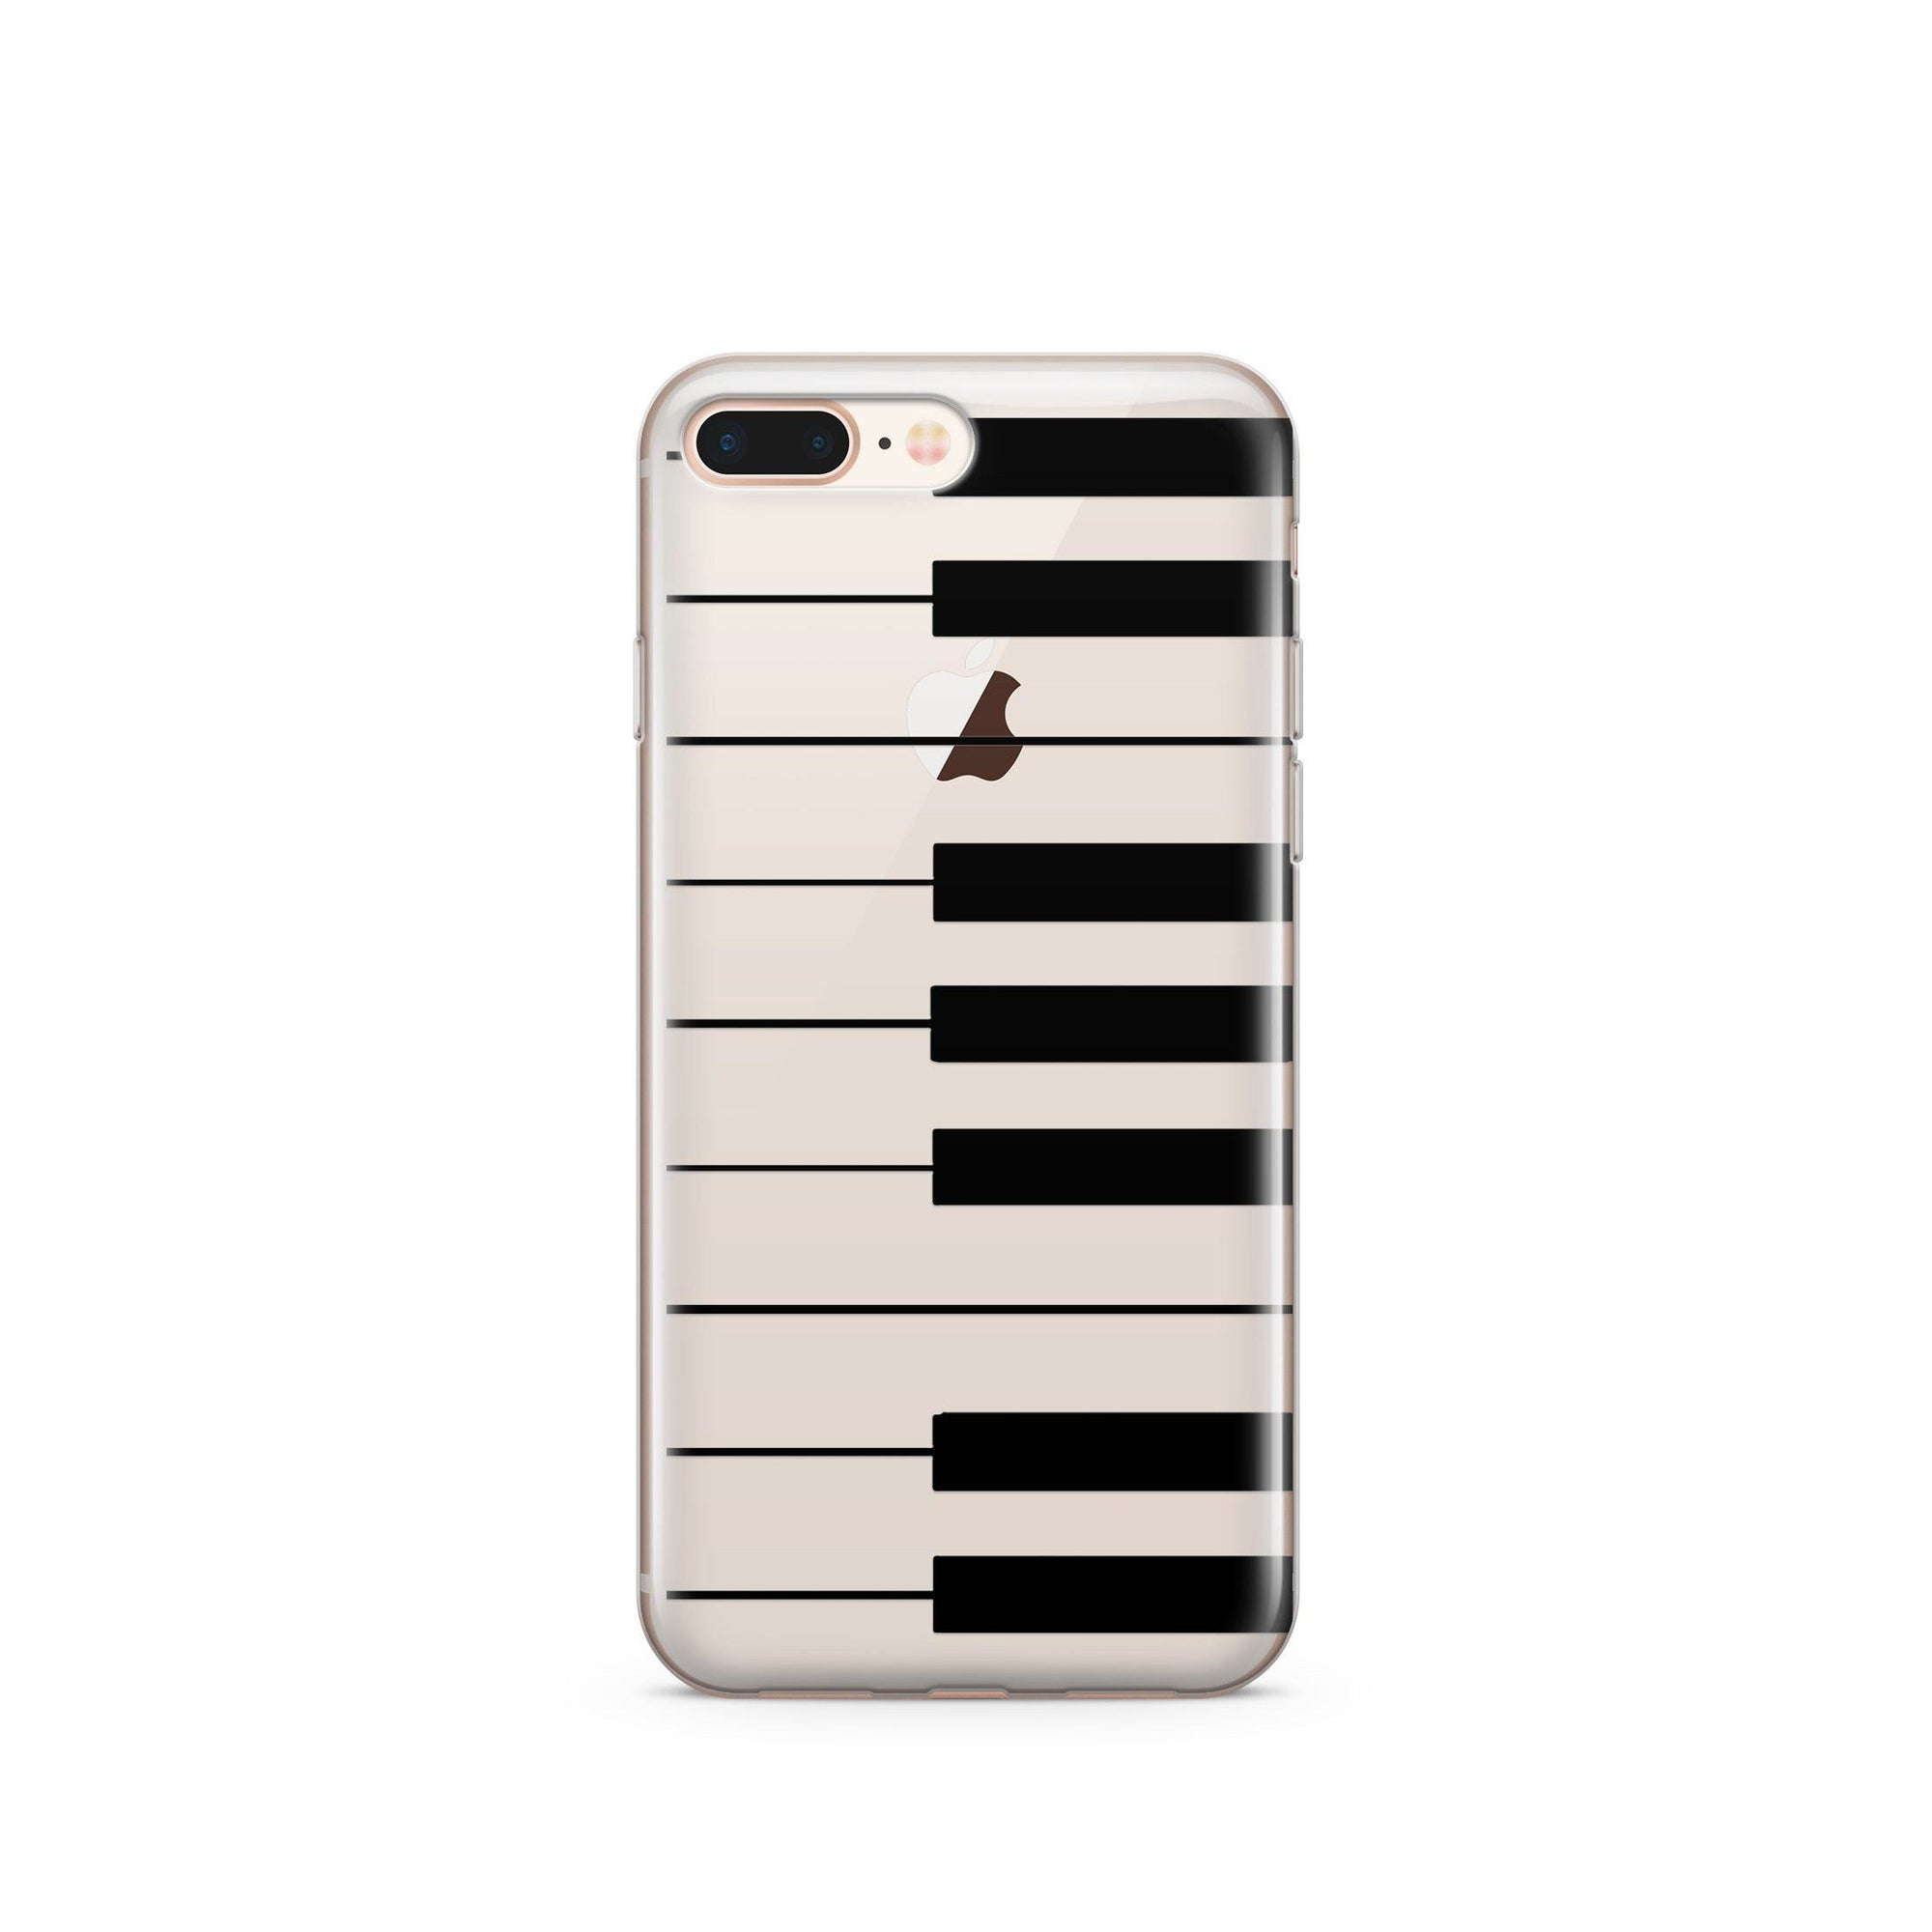 the piano keyboard clear tpu case cover milkyway. Black Bedroom Furniture Sets. Home Design Ideas